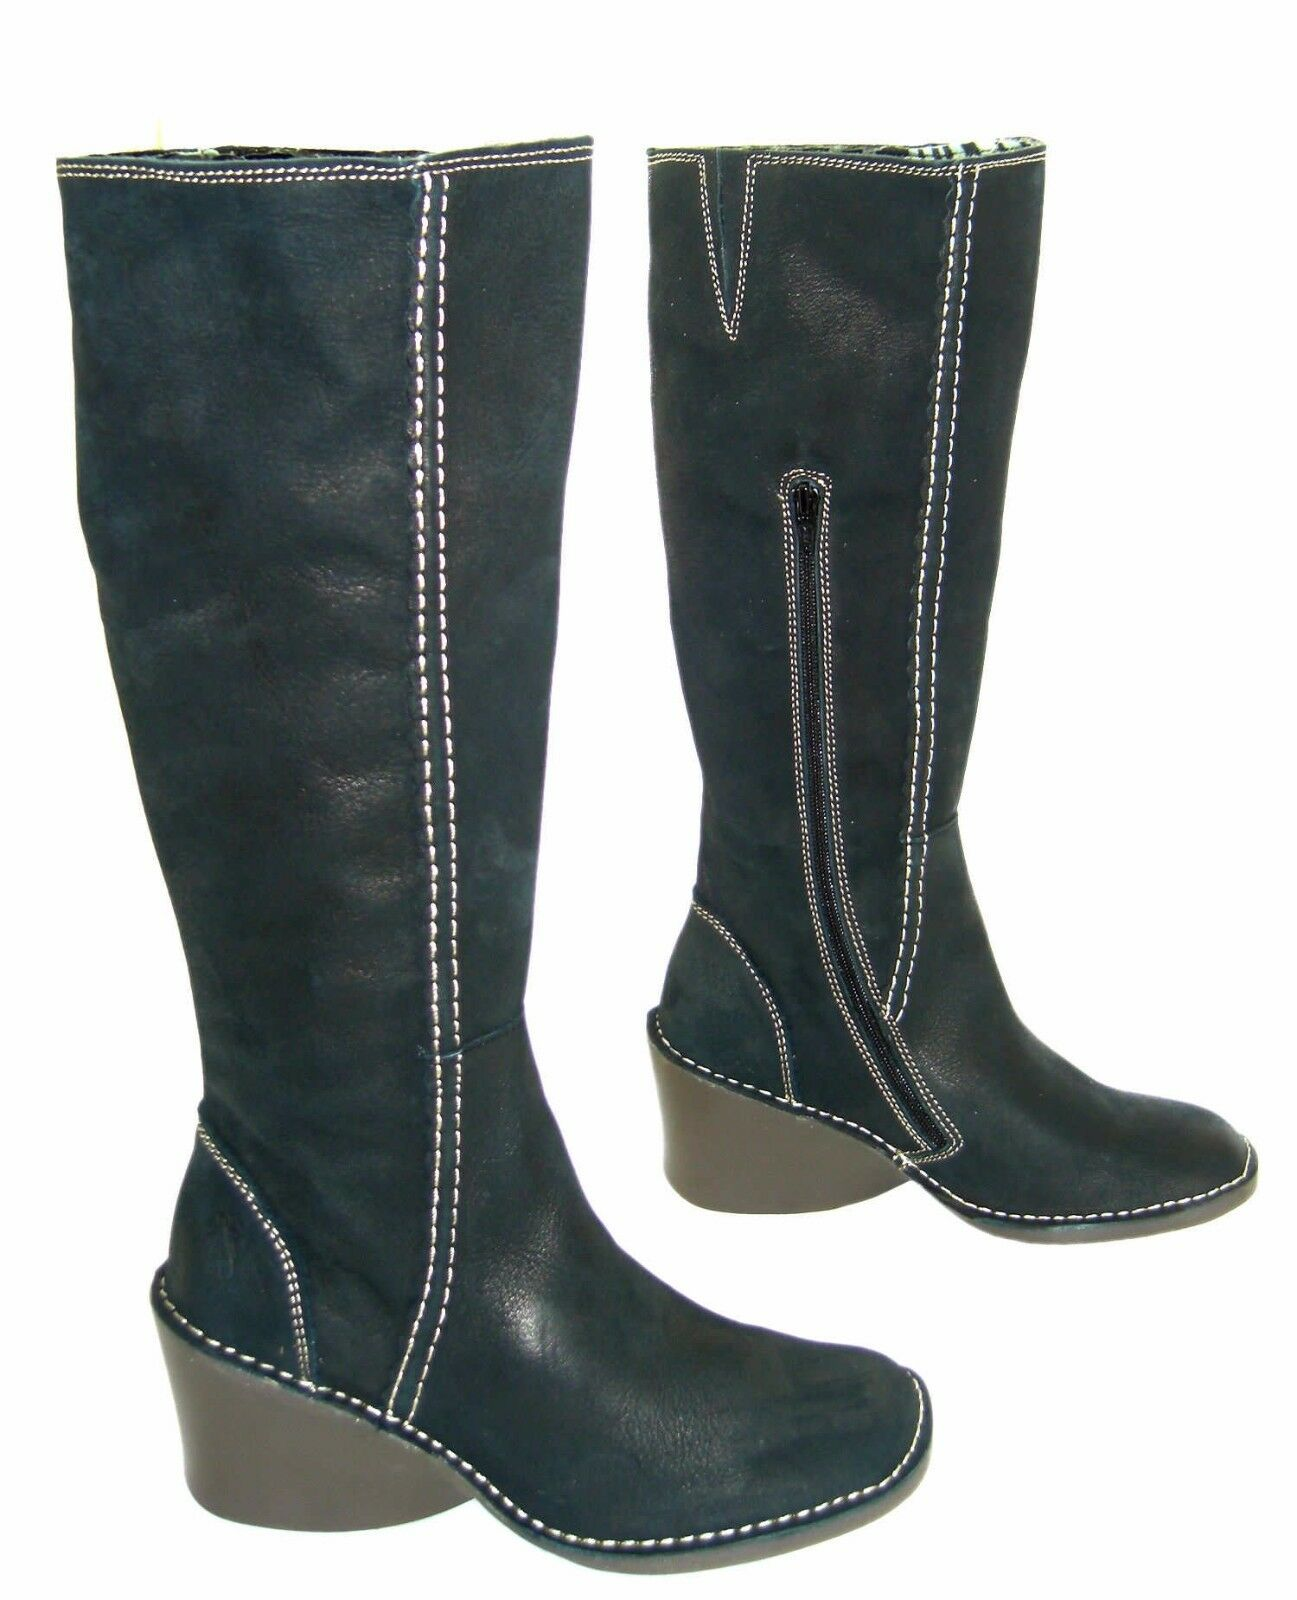 FLY LONDON ERIKA OLIVE GREEN LEATHER KNEE HIGH WEDGE BOOTS UK 4 EUR 37